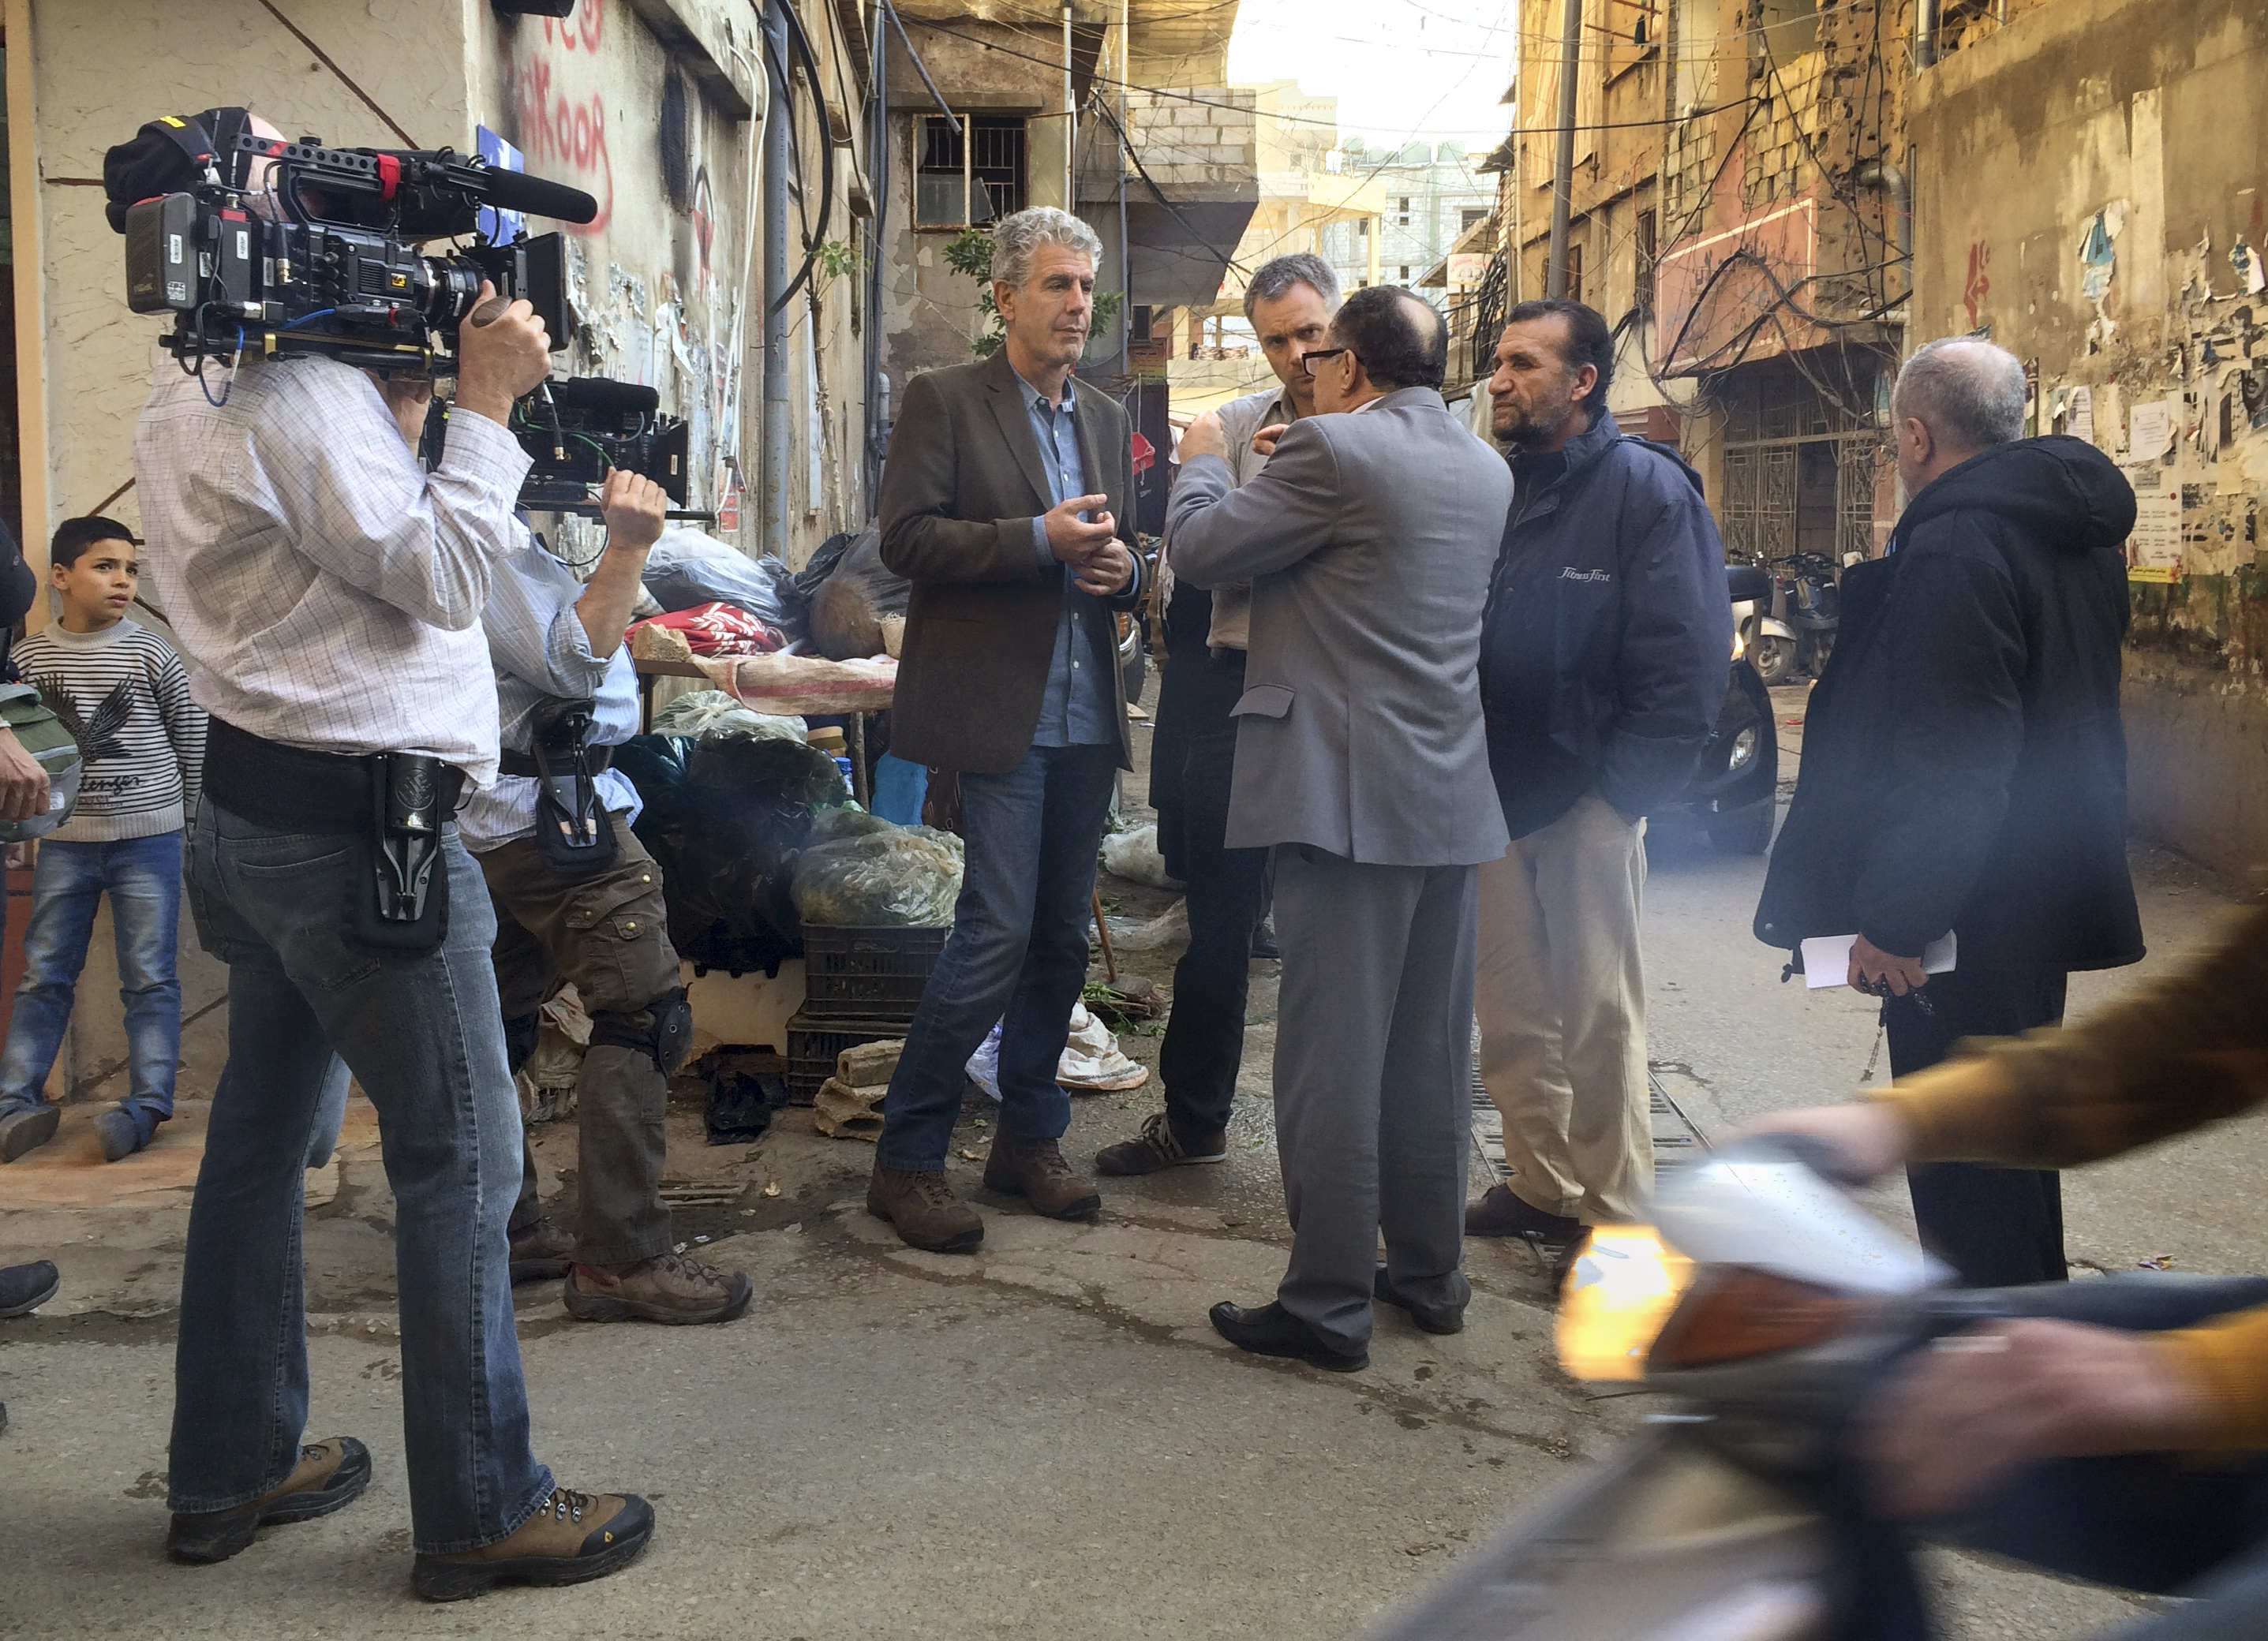 Bourdain and Nick Patton Walsh (to Bourdain's immediate left) speak with Mr. Najem (back to camera).